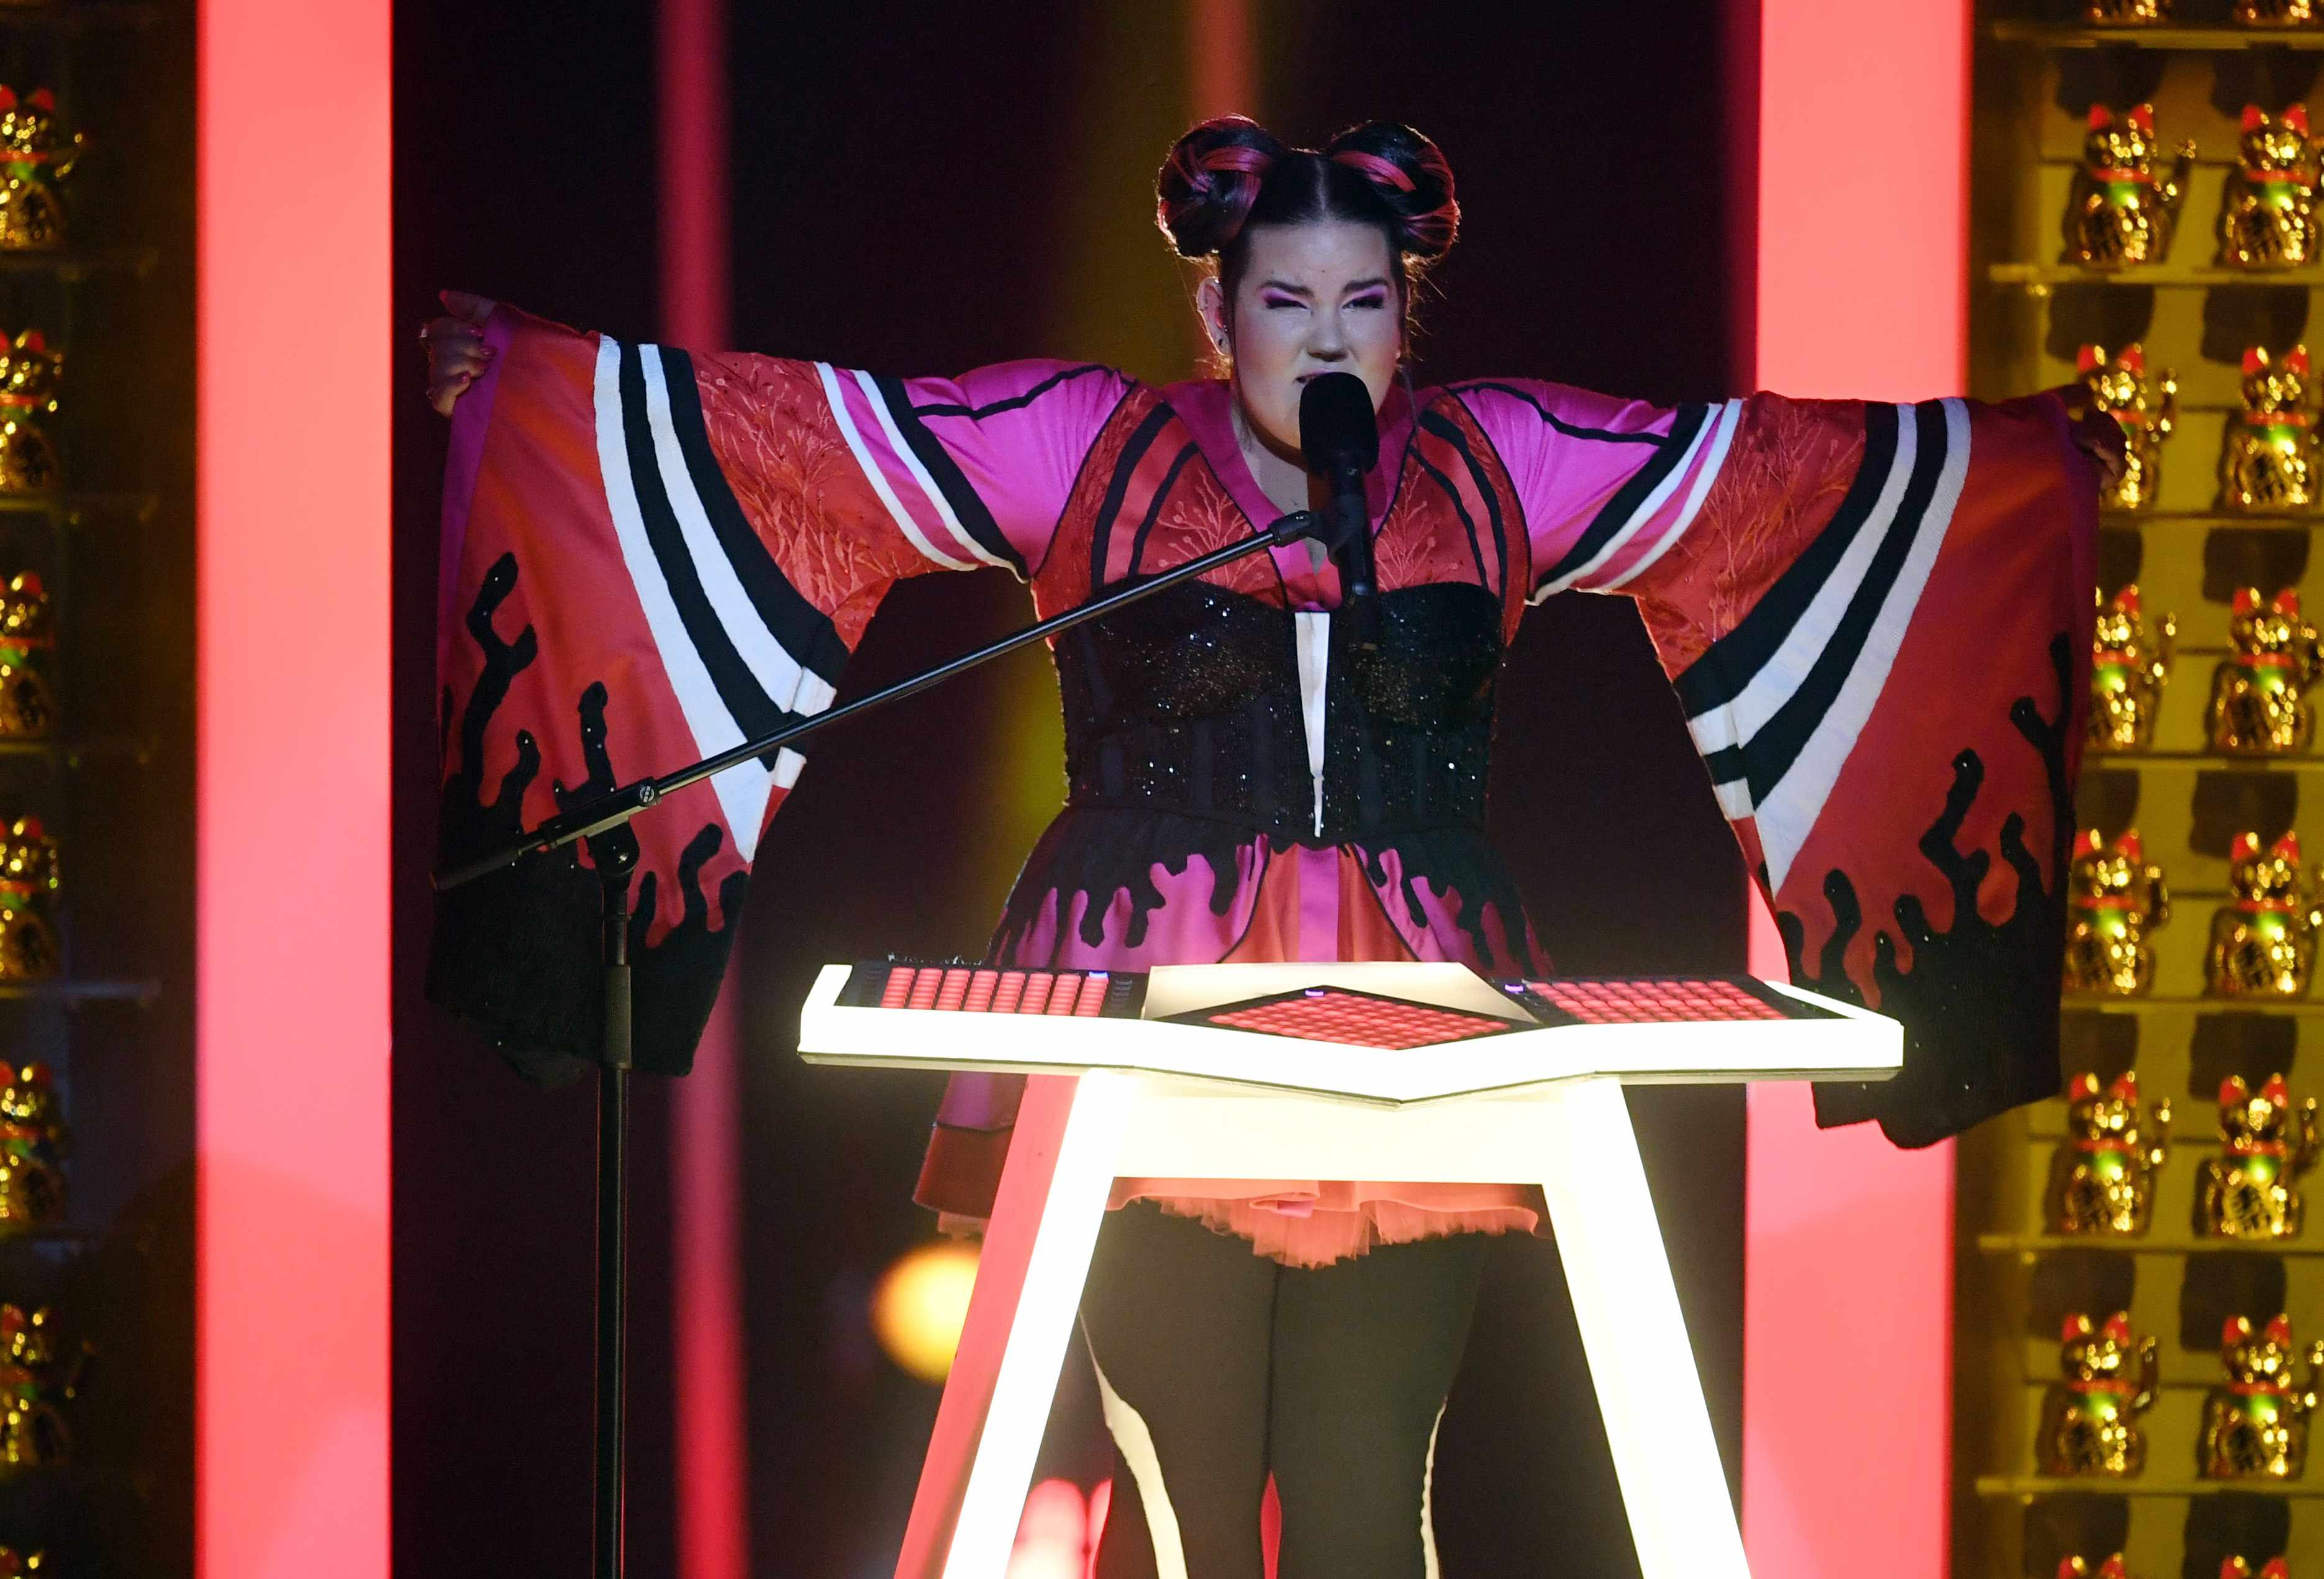 """Israel's singer Netta performs the song """"Toy"""" during the first semifinal of the 63rd edition of the Eurovision Song Contest 2018 at the Altice Arena in Lisbon, on May 8, 2018. - The Eurovision Song Contest 2018 will be held in the Portuguese capital Lisbon from May 8 until May 12, 2018. (Photo by FRANCISCO LEONG / AFP)        (Photo credit should read FRANCISCO LEONG/AFP/Getty Images)"""